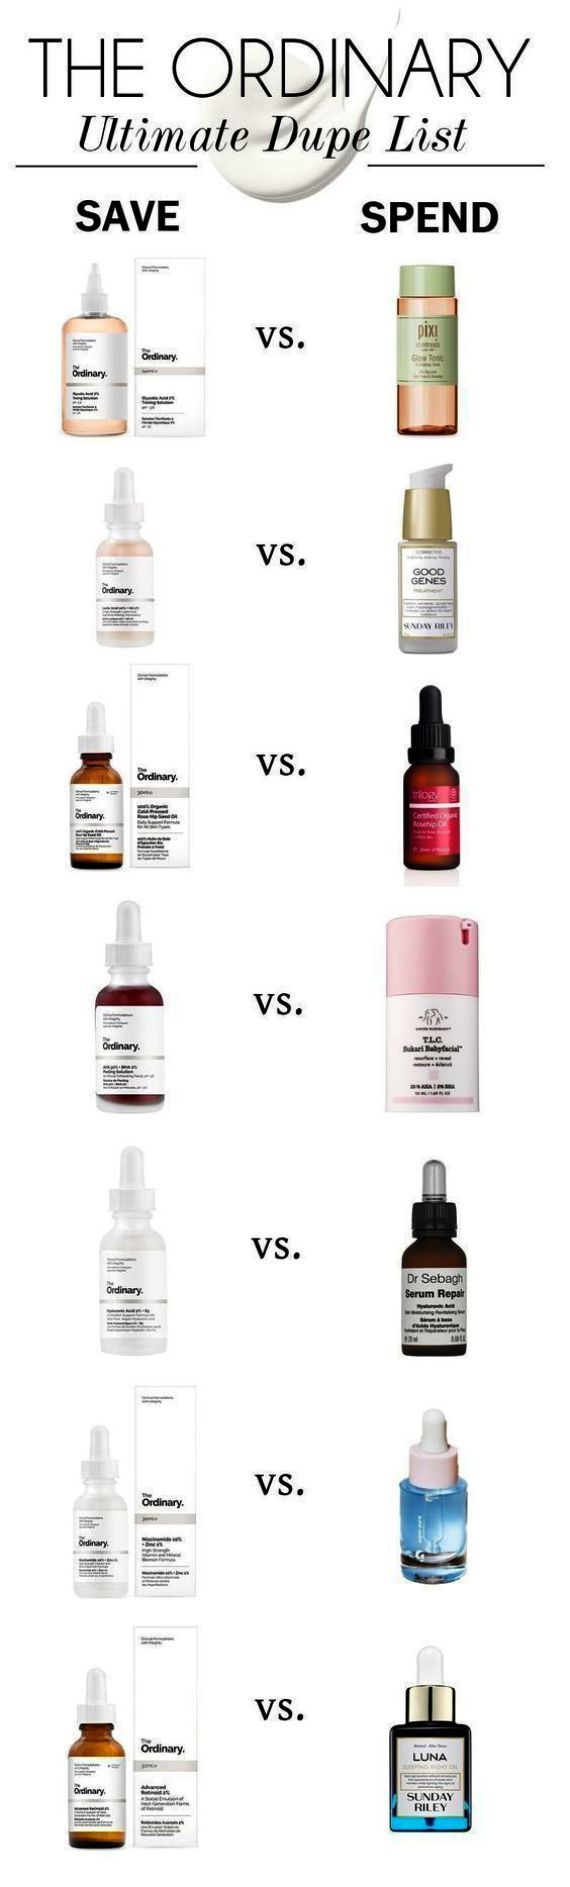 Skincare Ingredients To Not Mix Skincare Routine Sunscreen This Skincarerx Brands Though Skincare Rou Skincare Dupes The Ordinary Dupes Makeup And Beauty Blog